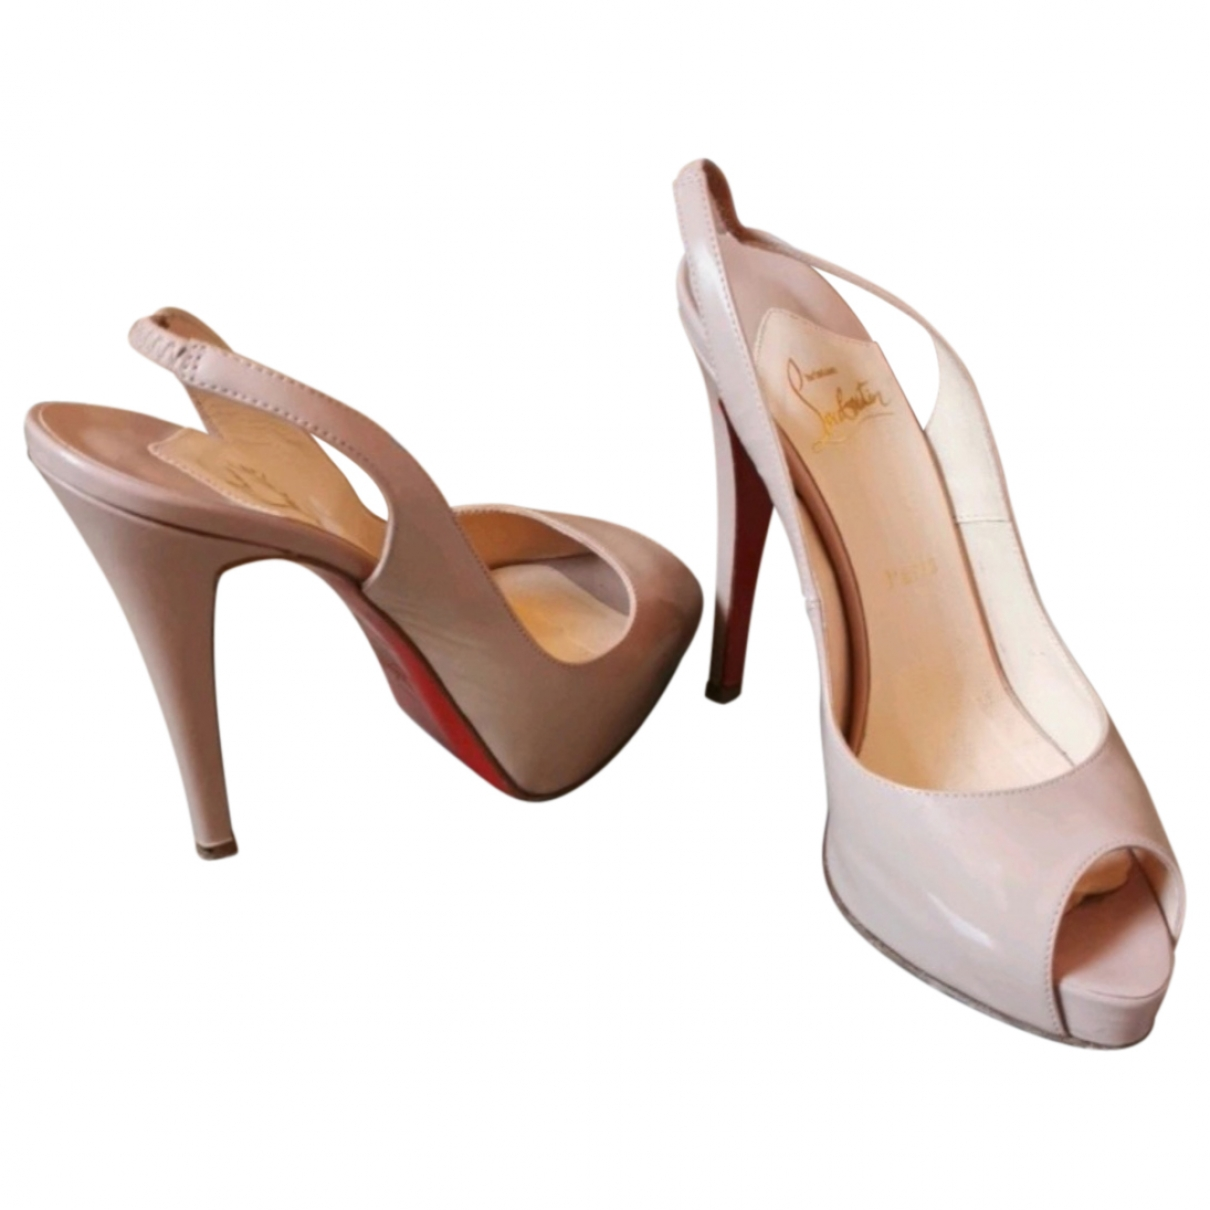 Tacones Private Number de Charol Christian Louboutin